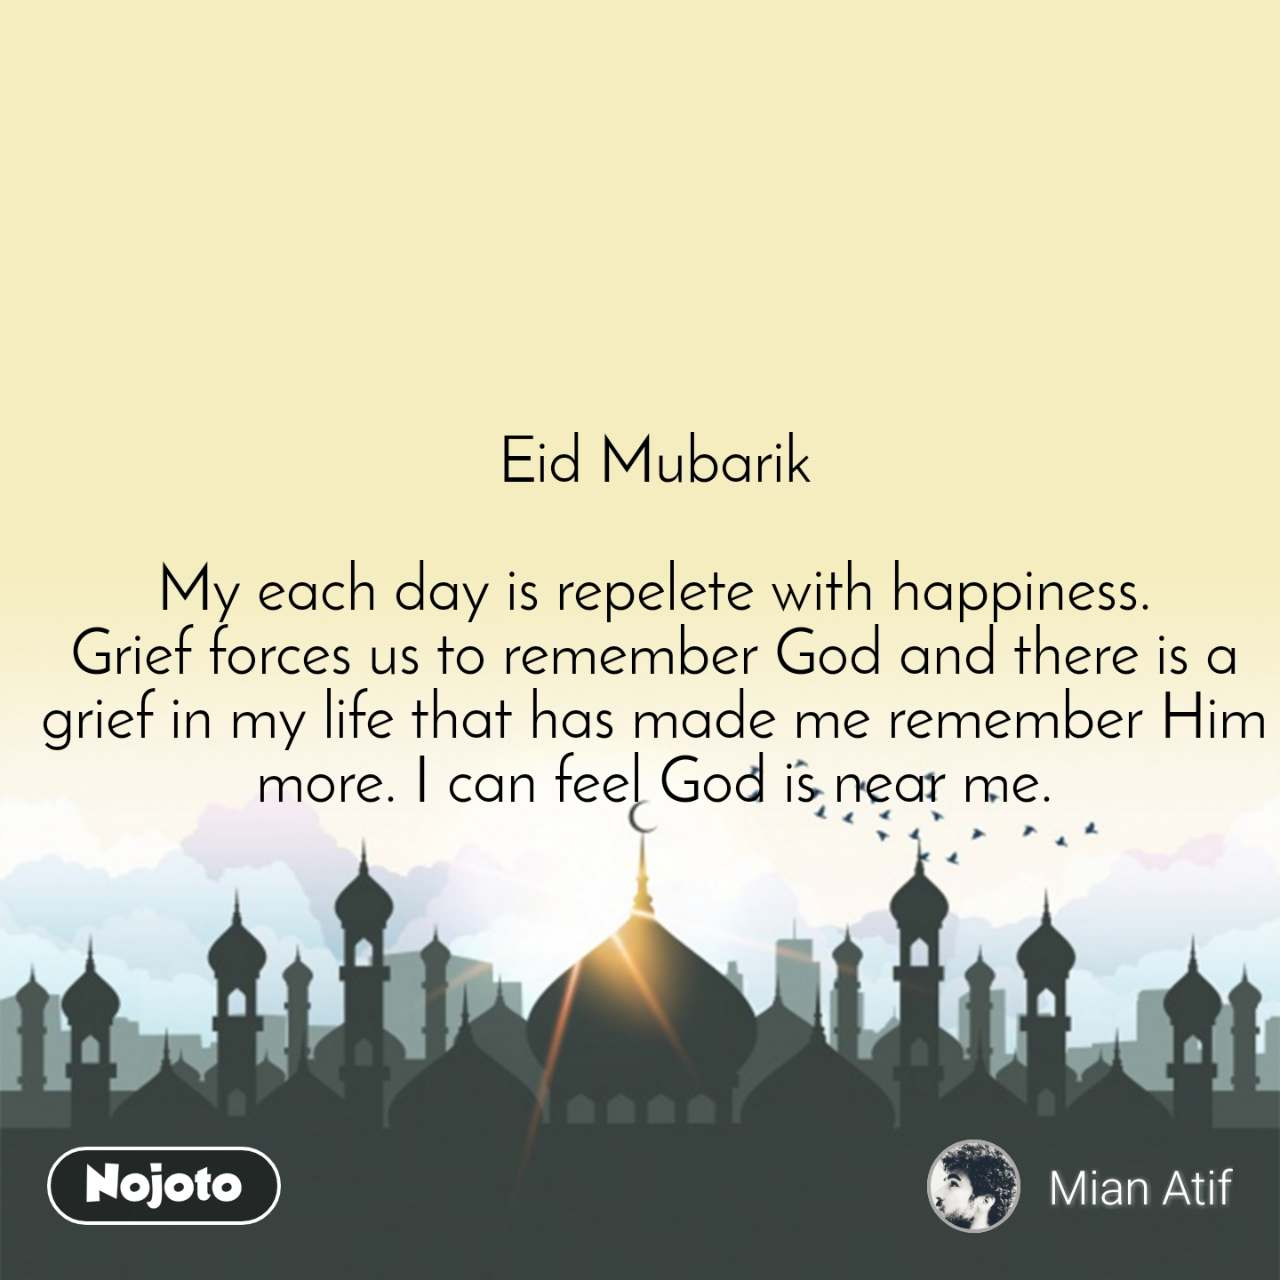 Eid Mubarik  My each day is repelete with happiness. Grief forces us to remember God and there is a grief in my life that has made me remember Him more. I can feel God is near me.